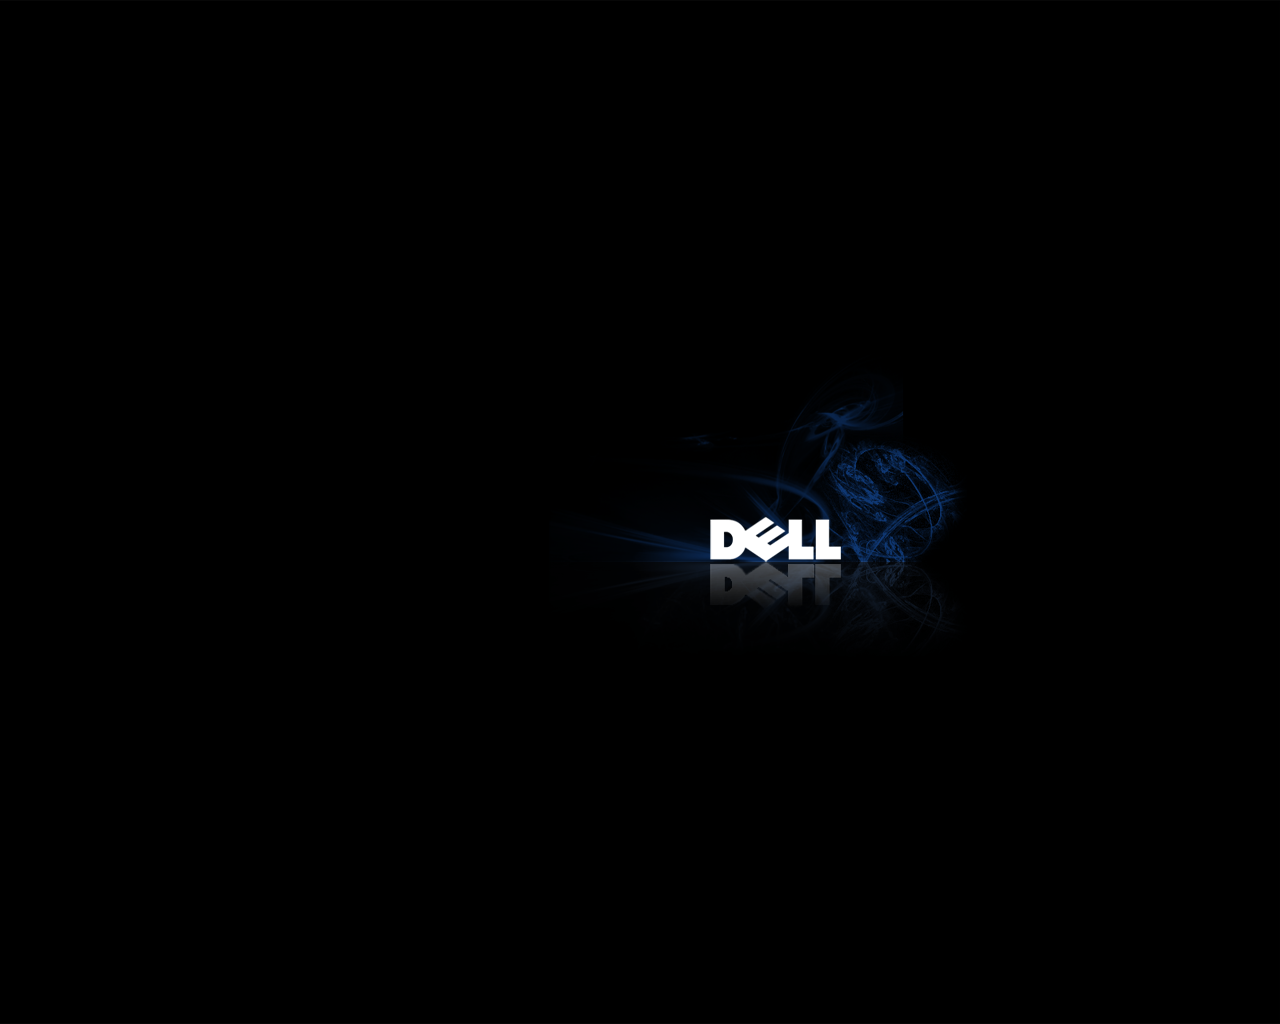 The Best Wallpaper in 2013 HD Wallpapers For Dell Laptop 1280x1024